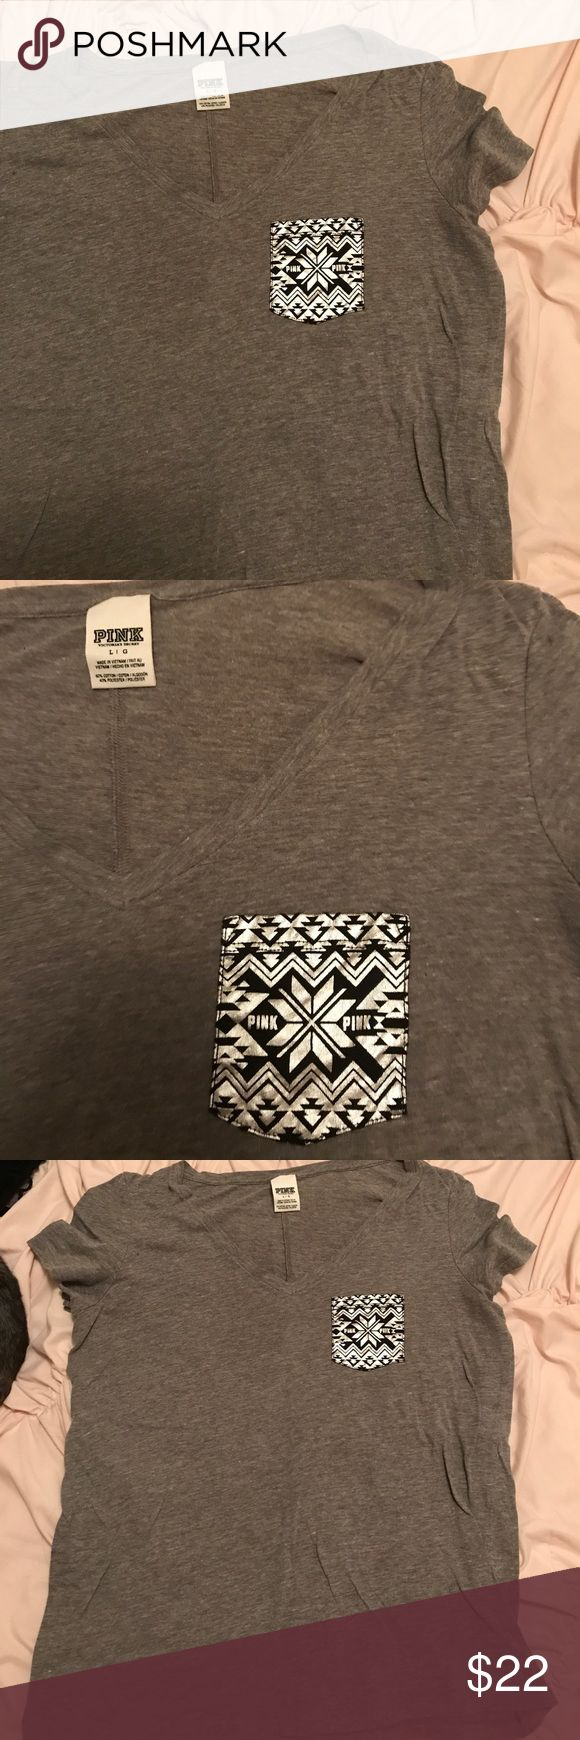 EUC short sleeve VS Pink lounge chevron pocket T Grey background with black and silver pocket size L. Like new, worn a handful of times. Runs true to size. PINK Victoria's Secret Tops Tees - Short Sleeve